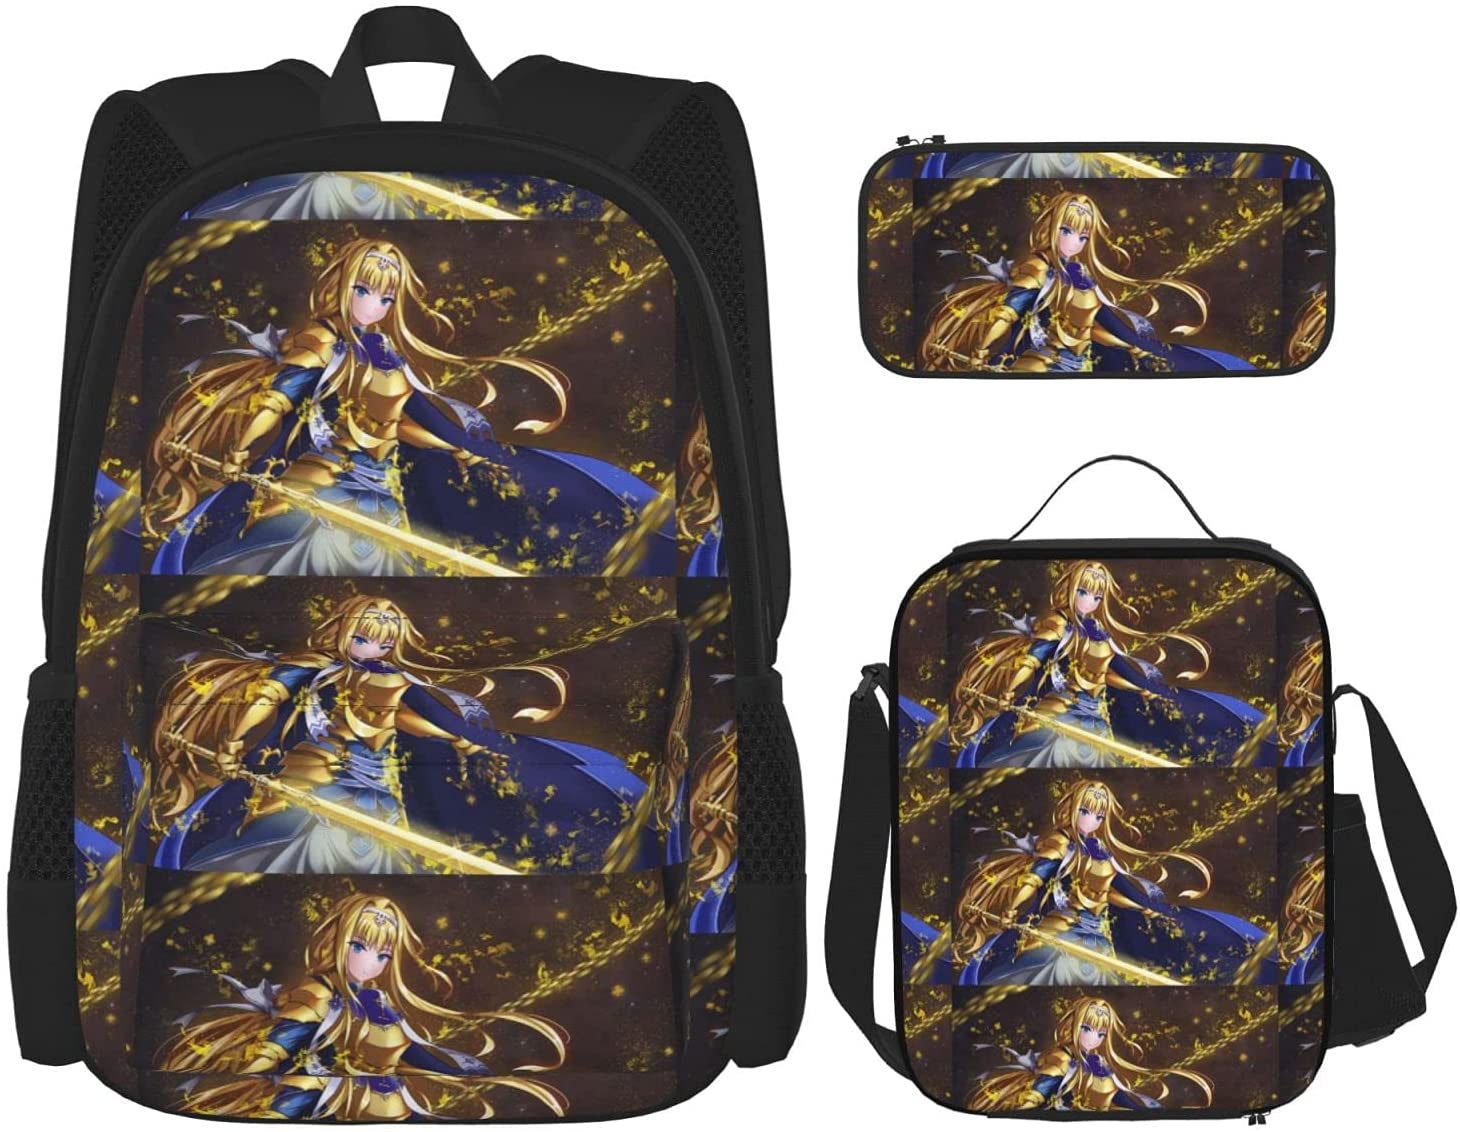 Fate Zero Fees free Saber Anime Backpack 3 Set Ca Shipping included Piece + Pencil